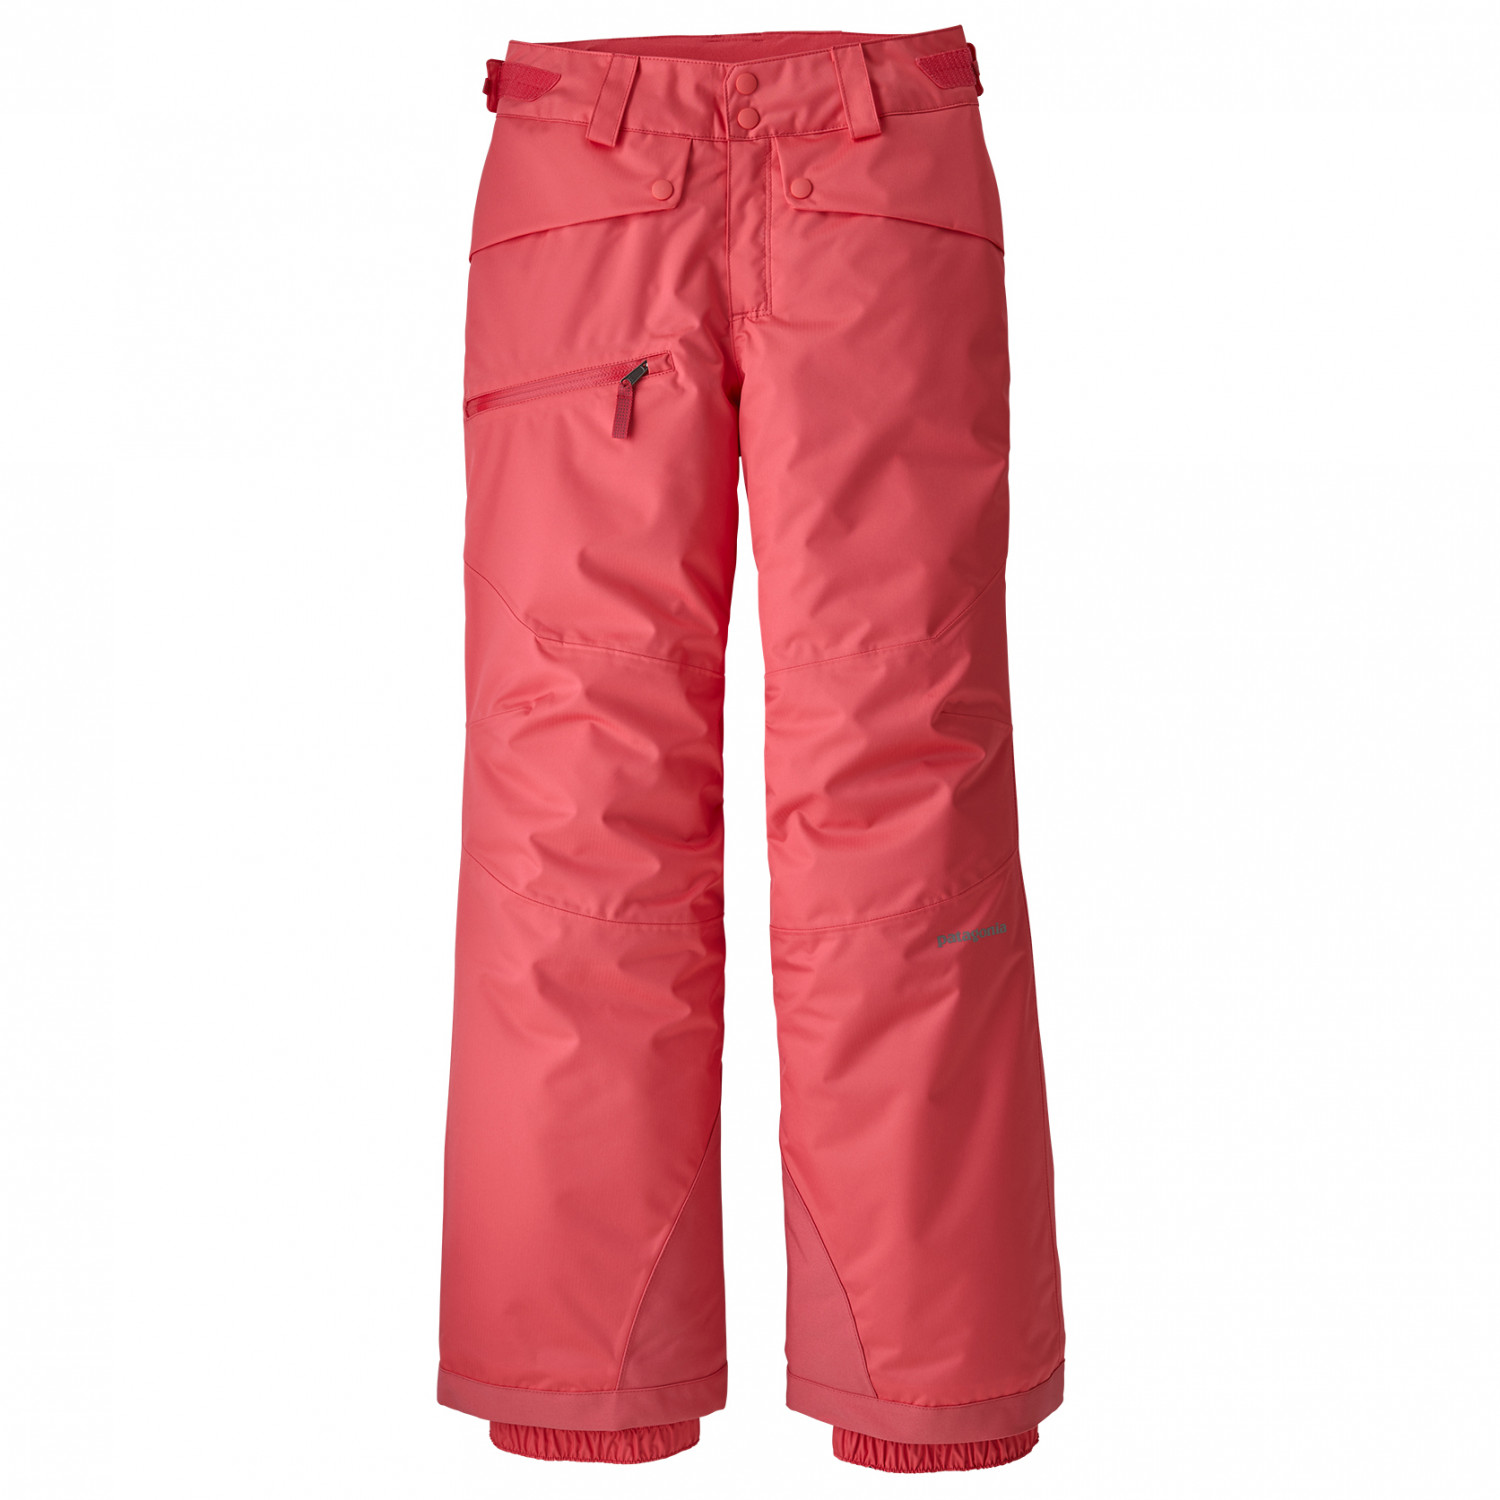 big sale fb9a6 311a0 Patagonia - Girls' Snowbelle Pants - Pantaloni da sci - Winter Skies /  Birch White | S